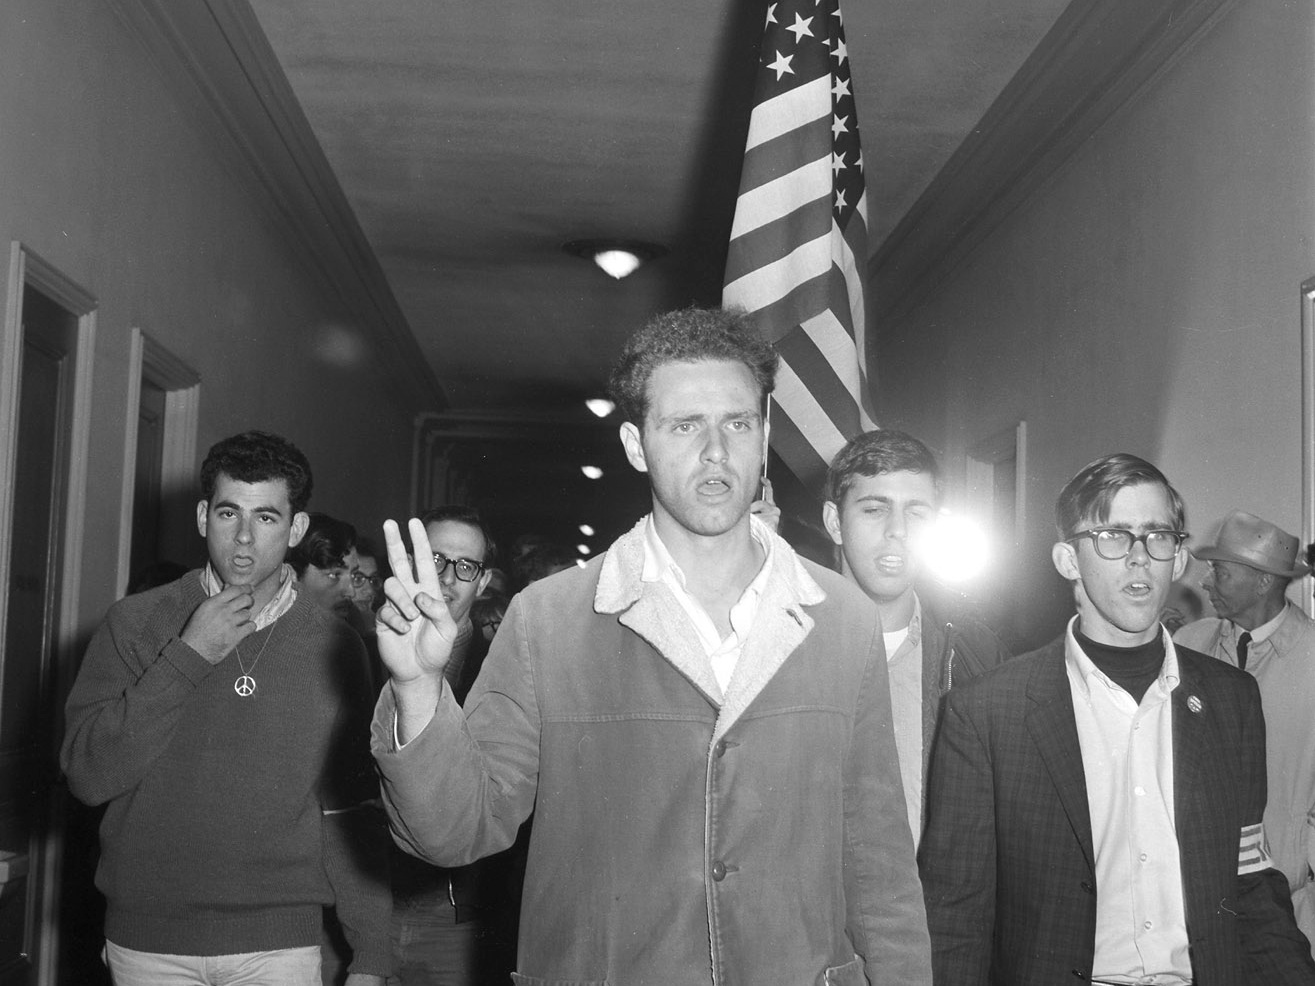 Savio-leading-demonstrators-into-Sproul-Hall-photo-1964-Warren-UC-Bancroft-Library.jpg